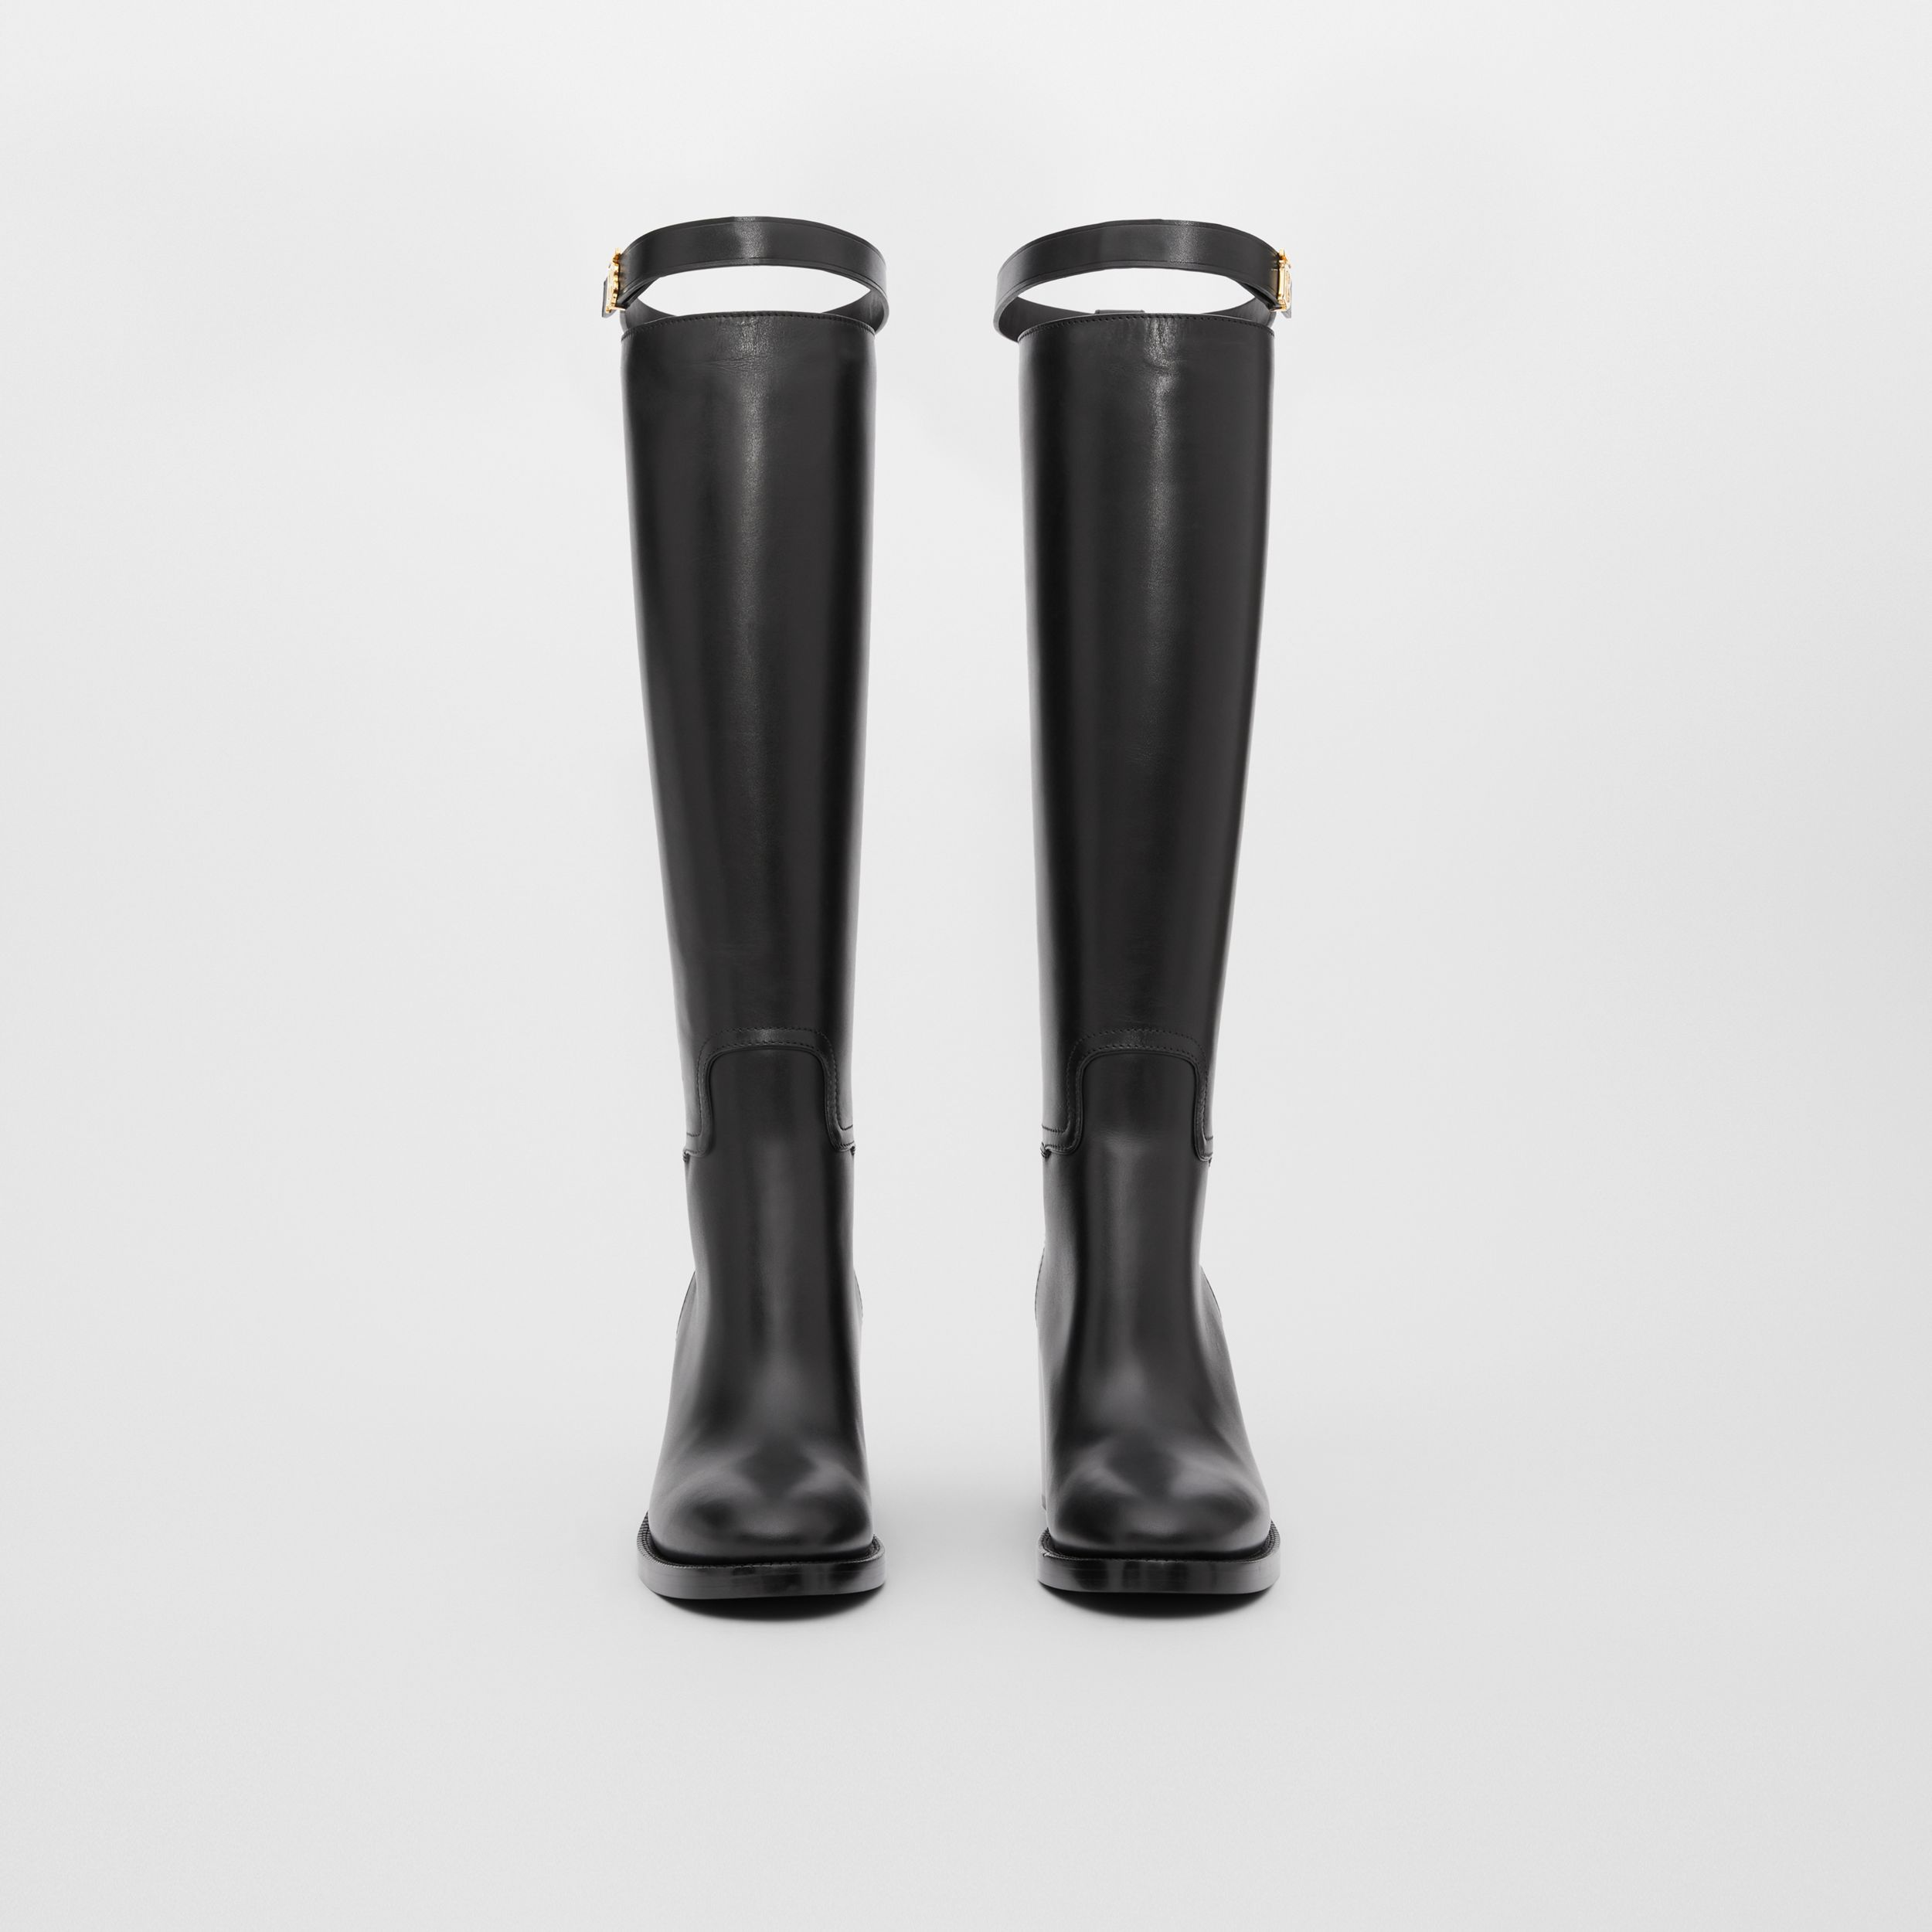 Monogram Motif Leather Knee-high Boots in Black - Women | Burberry - 4